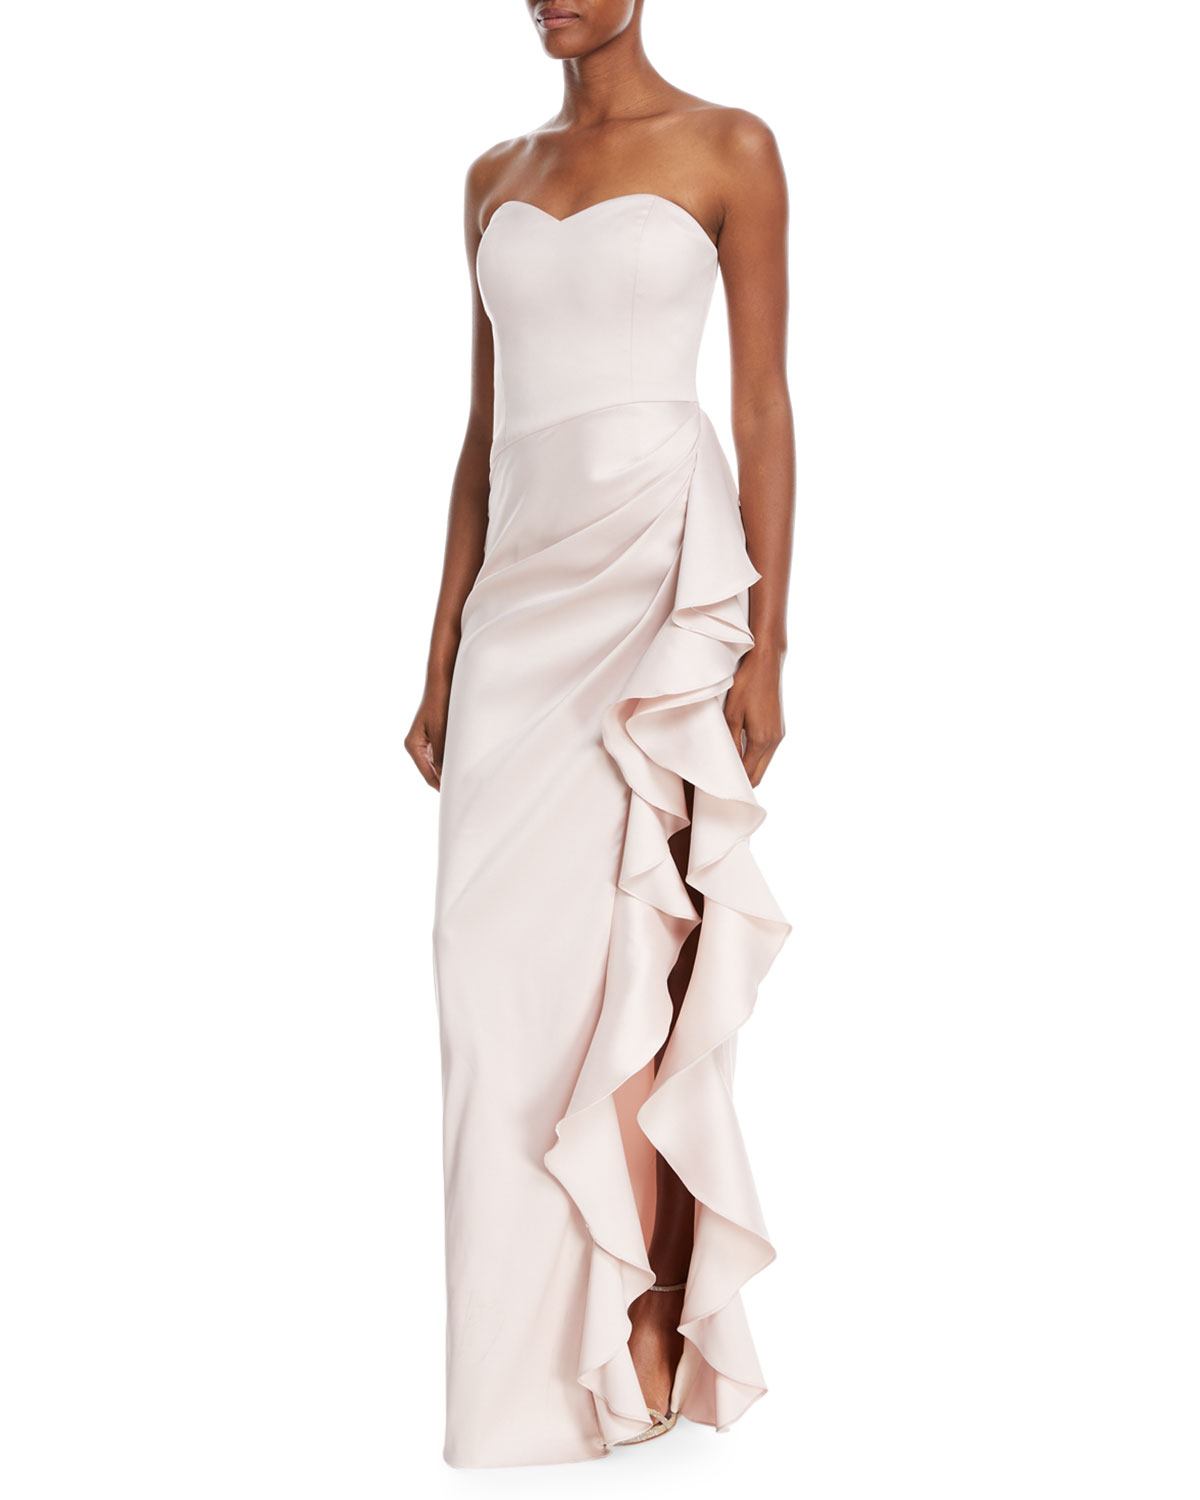 35f6e70ba58f Badgley Mischka Collection Strapless Sweetheart Asymmetric Ruffle Gown